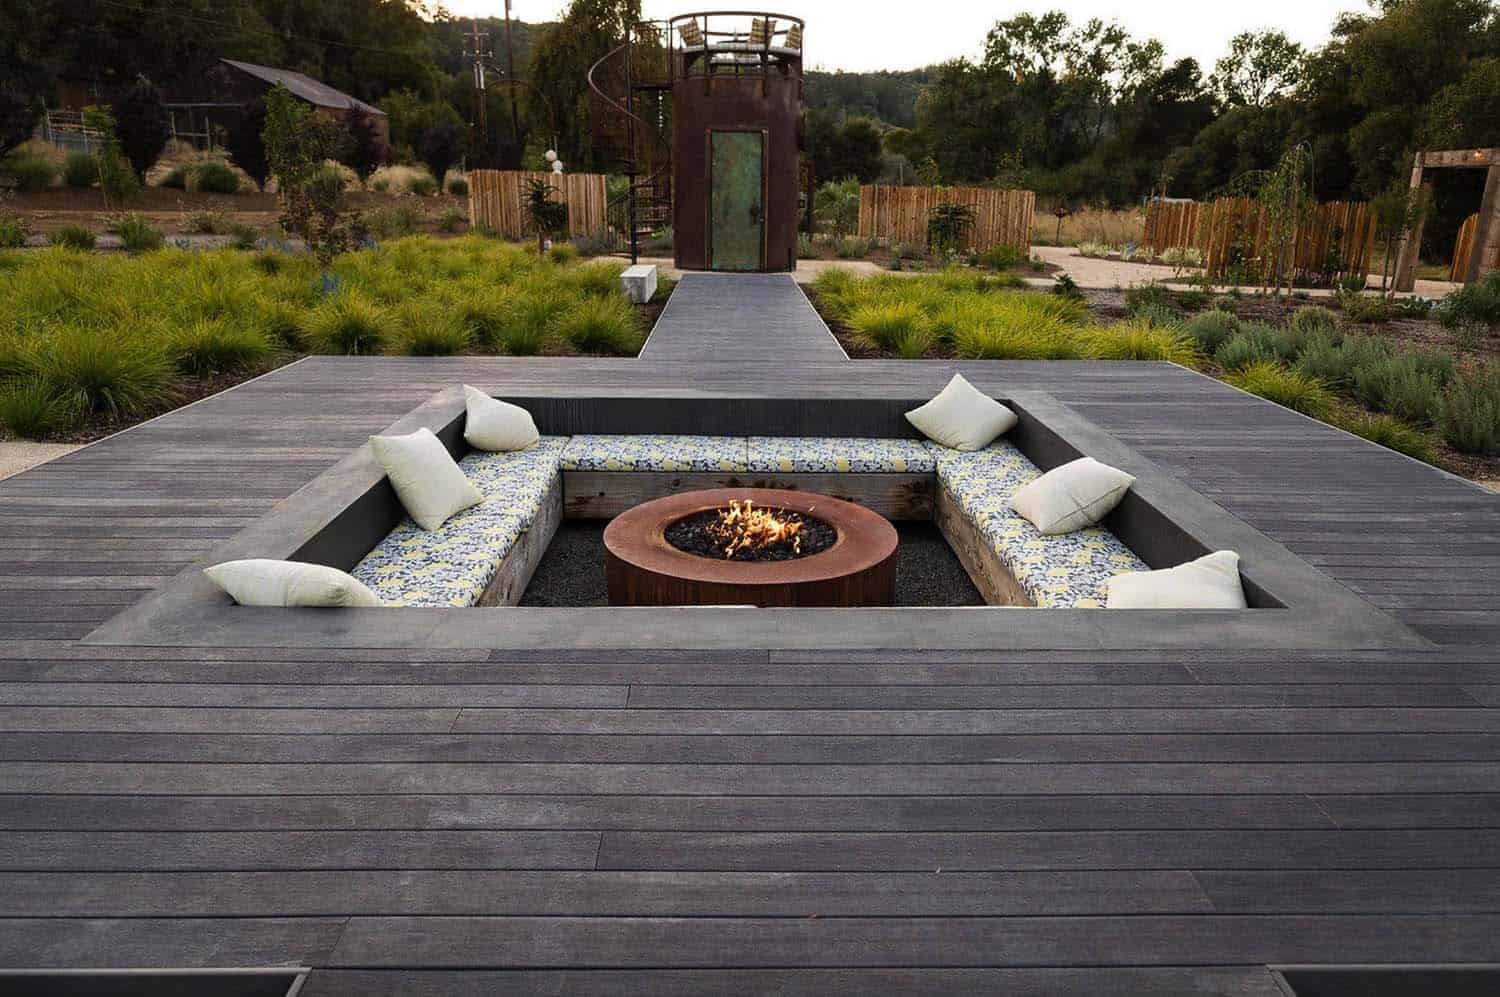 28 Inspiring Fire Pit Ideas To Create A Fabulous Backyard ... on Backyard Patio Designs With Fire Pit  id=70709